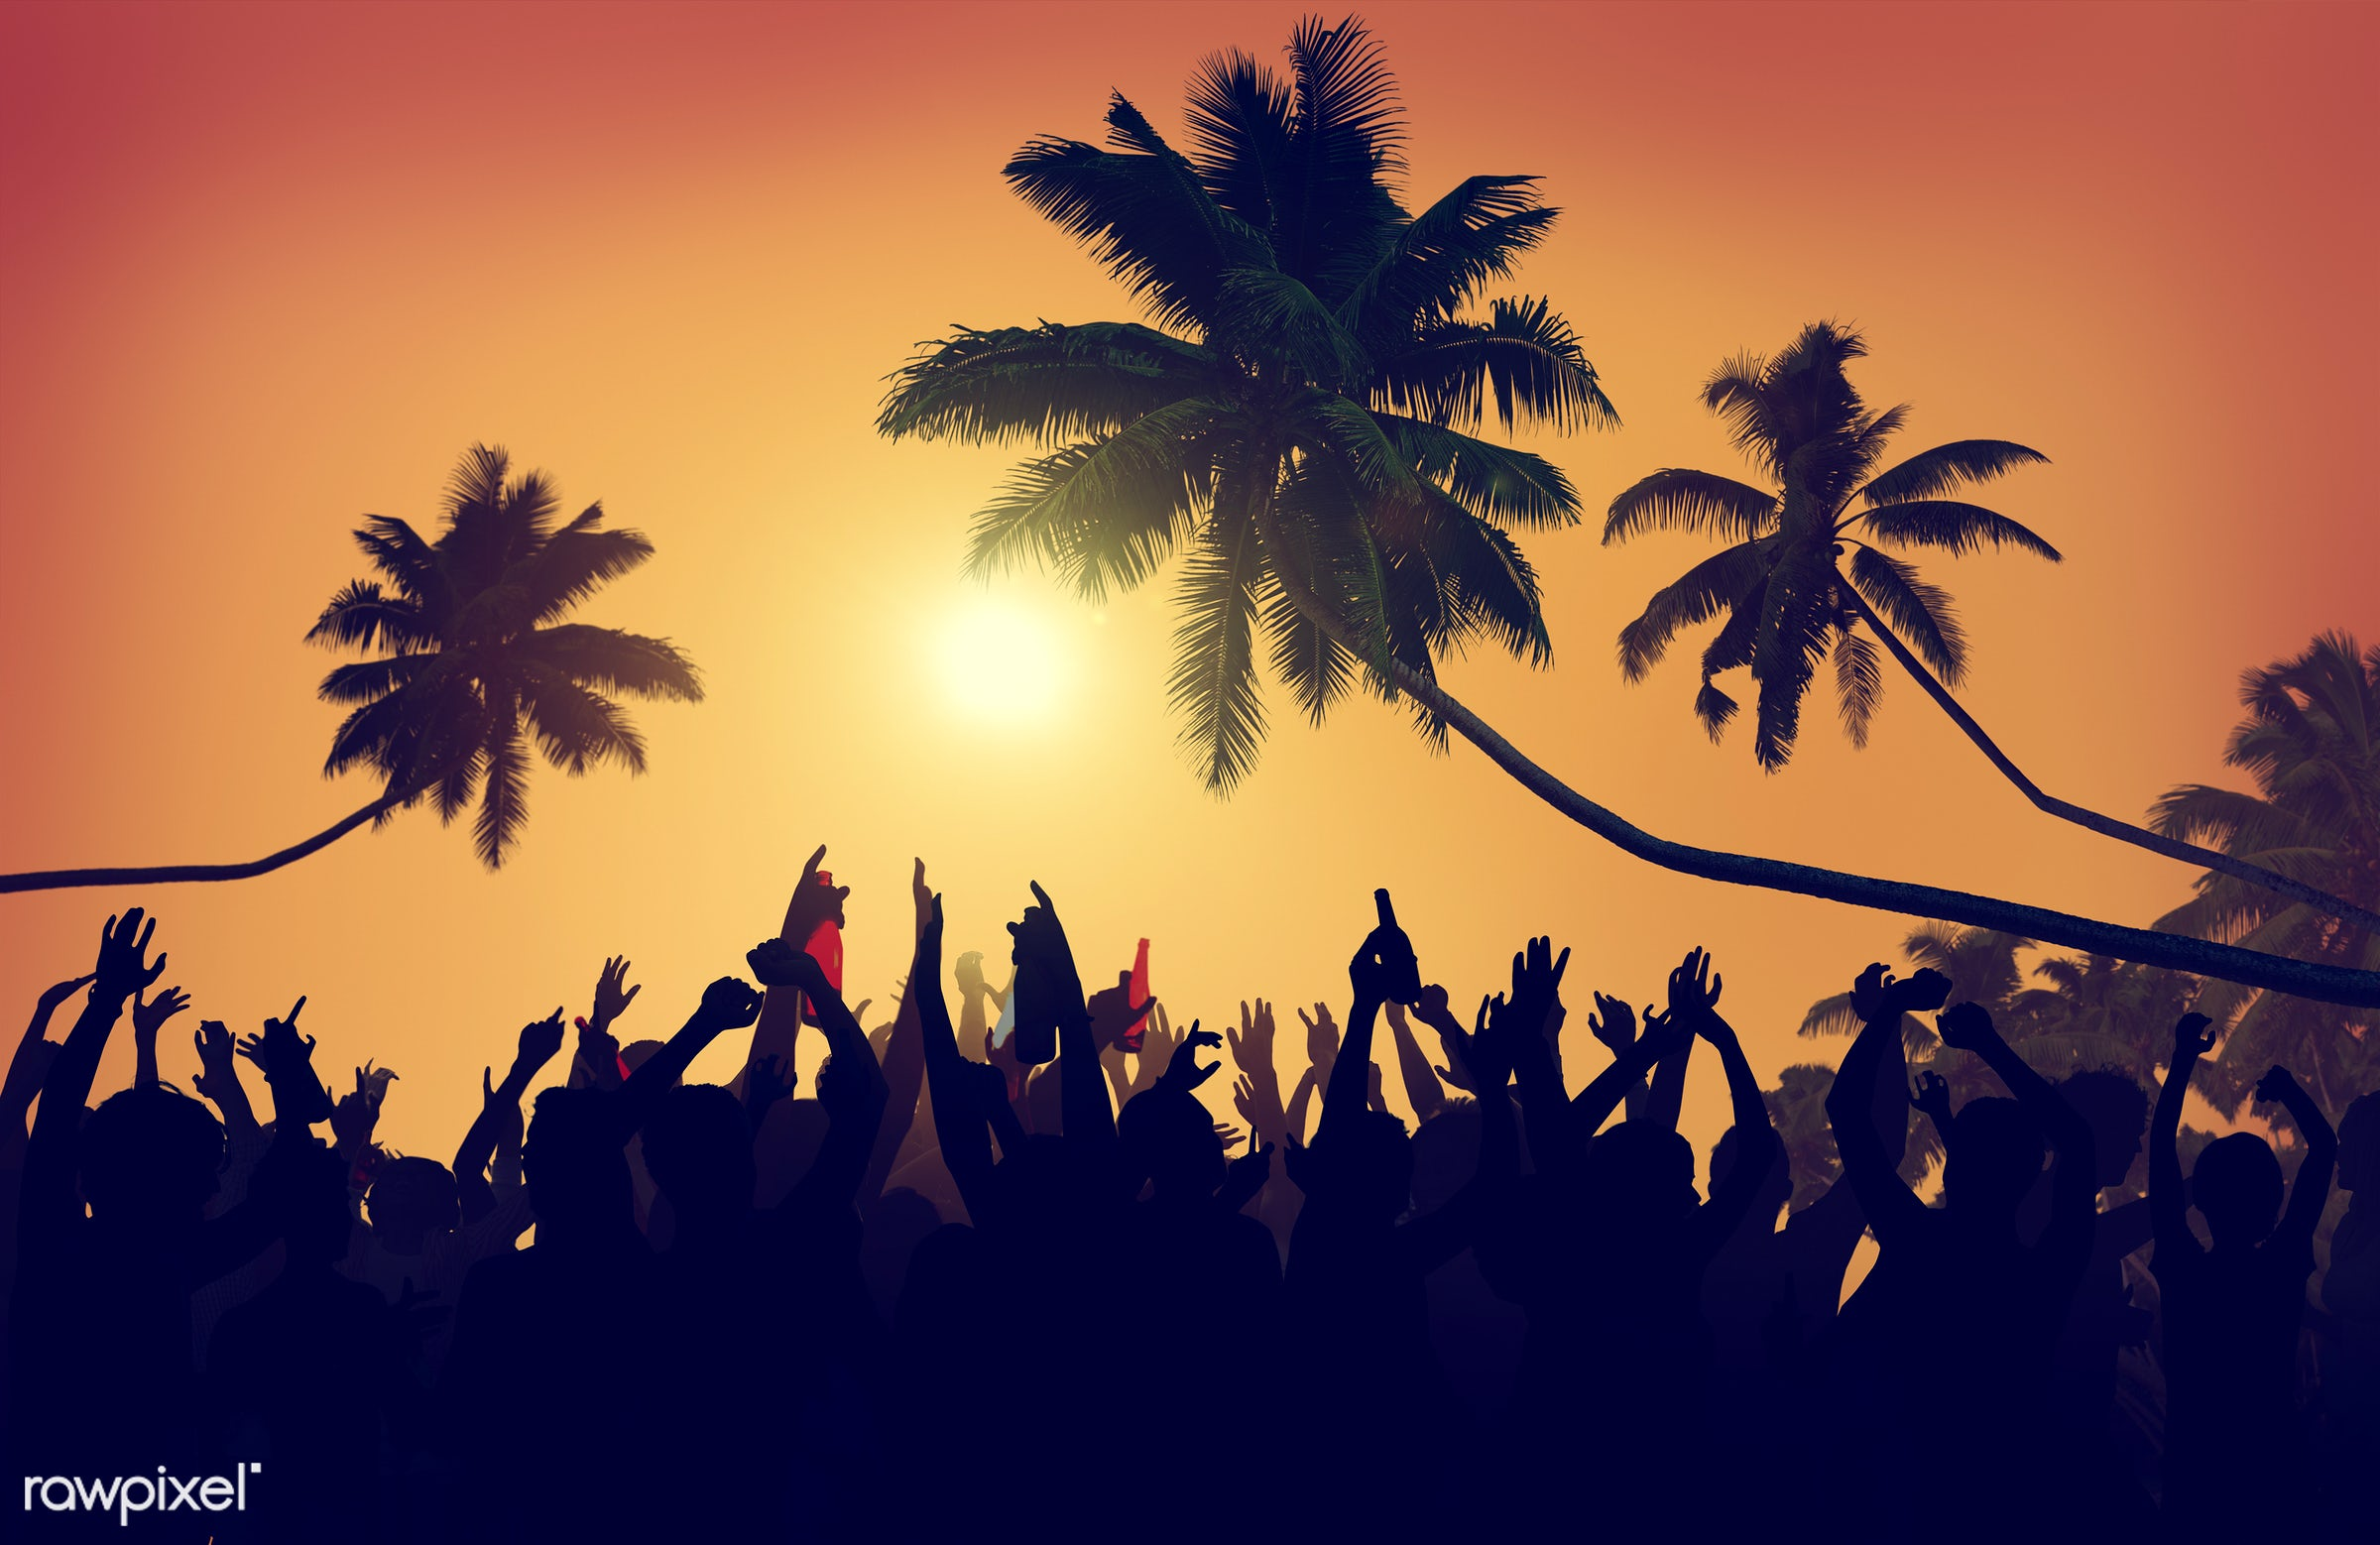 adolescence, audience, back lit, beach party, carefree, celebration, cheerful, coconut palm tree, communication, community,...